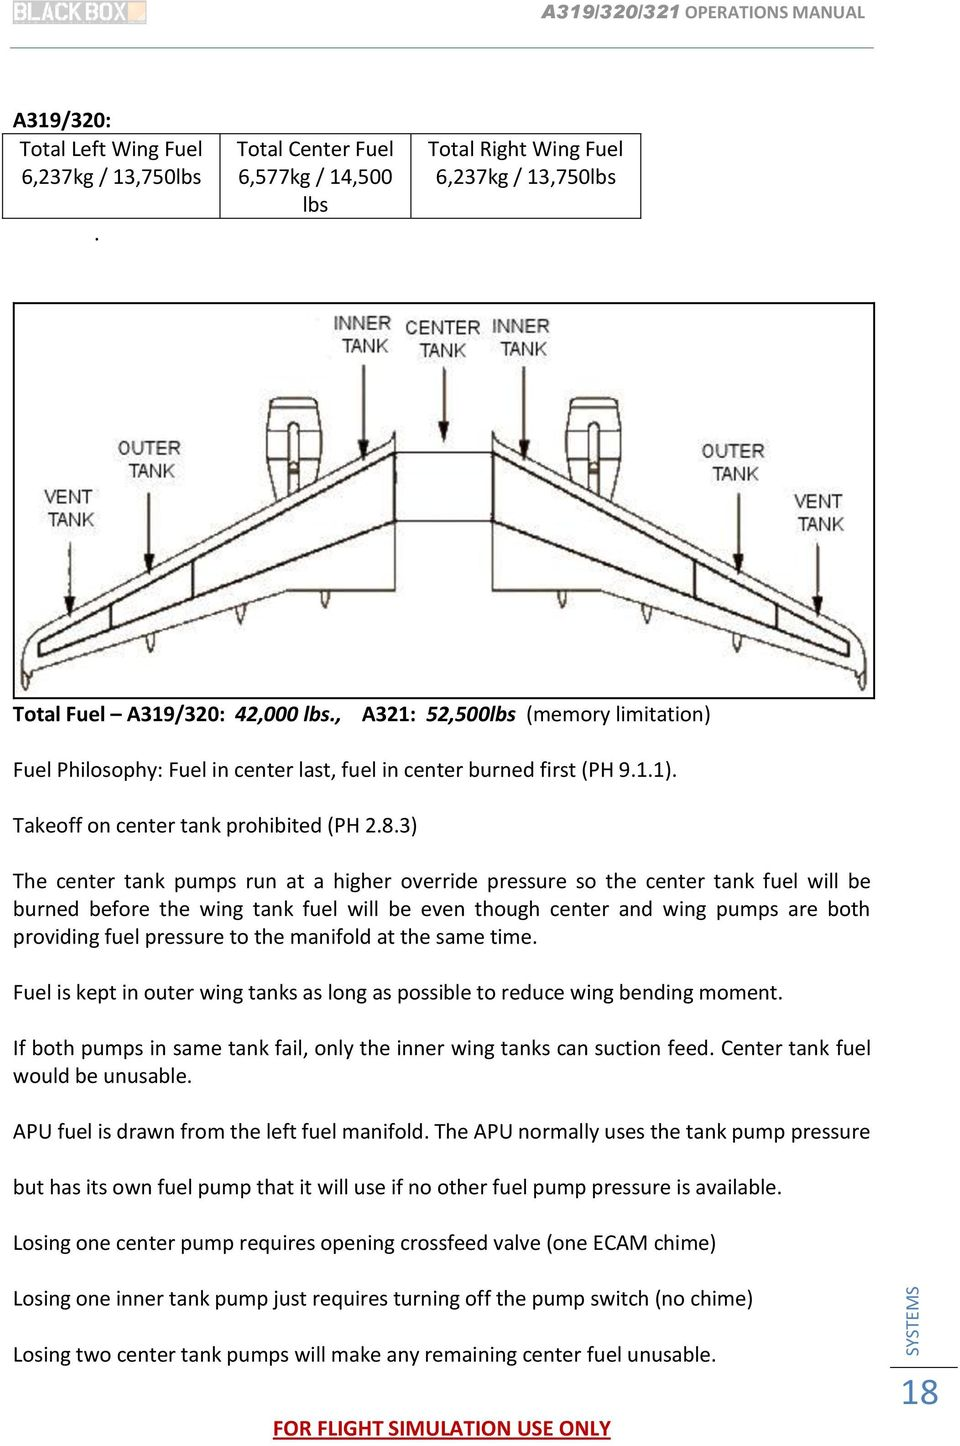 Airbus 319 320 321 Operations Manual Pdf Wiring Diagram 3 The Center Tank Pumps Run At A Higher Override Pressure So